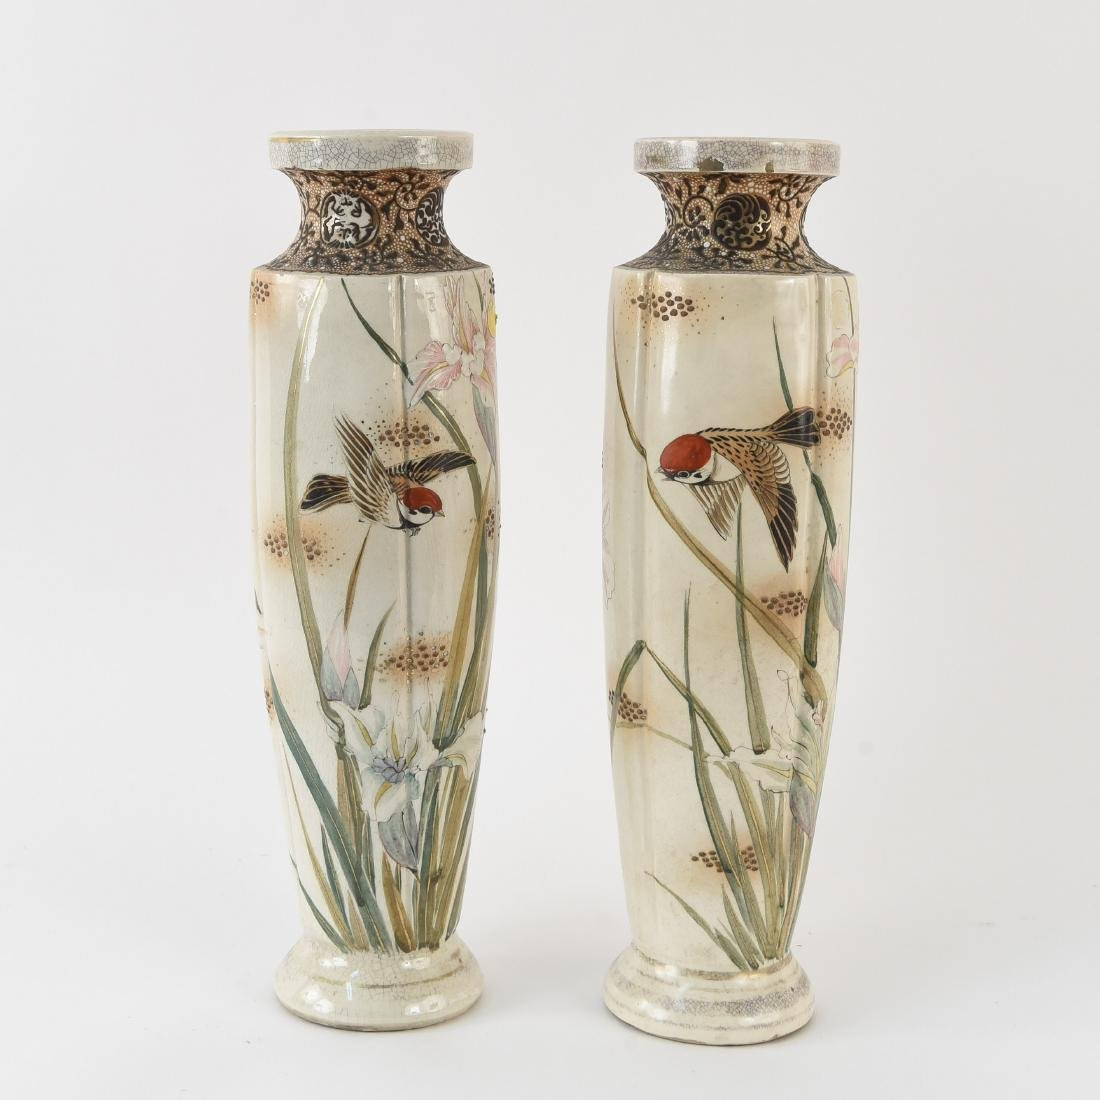 PAIR OF JAPANESE CERAMIC VASES